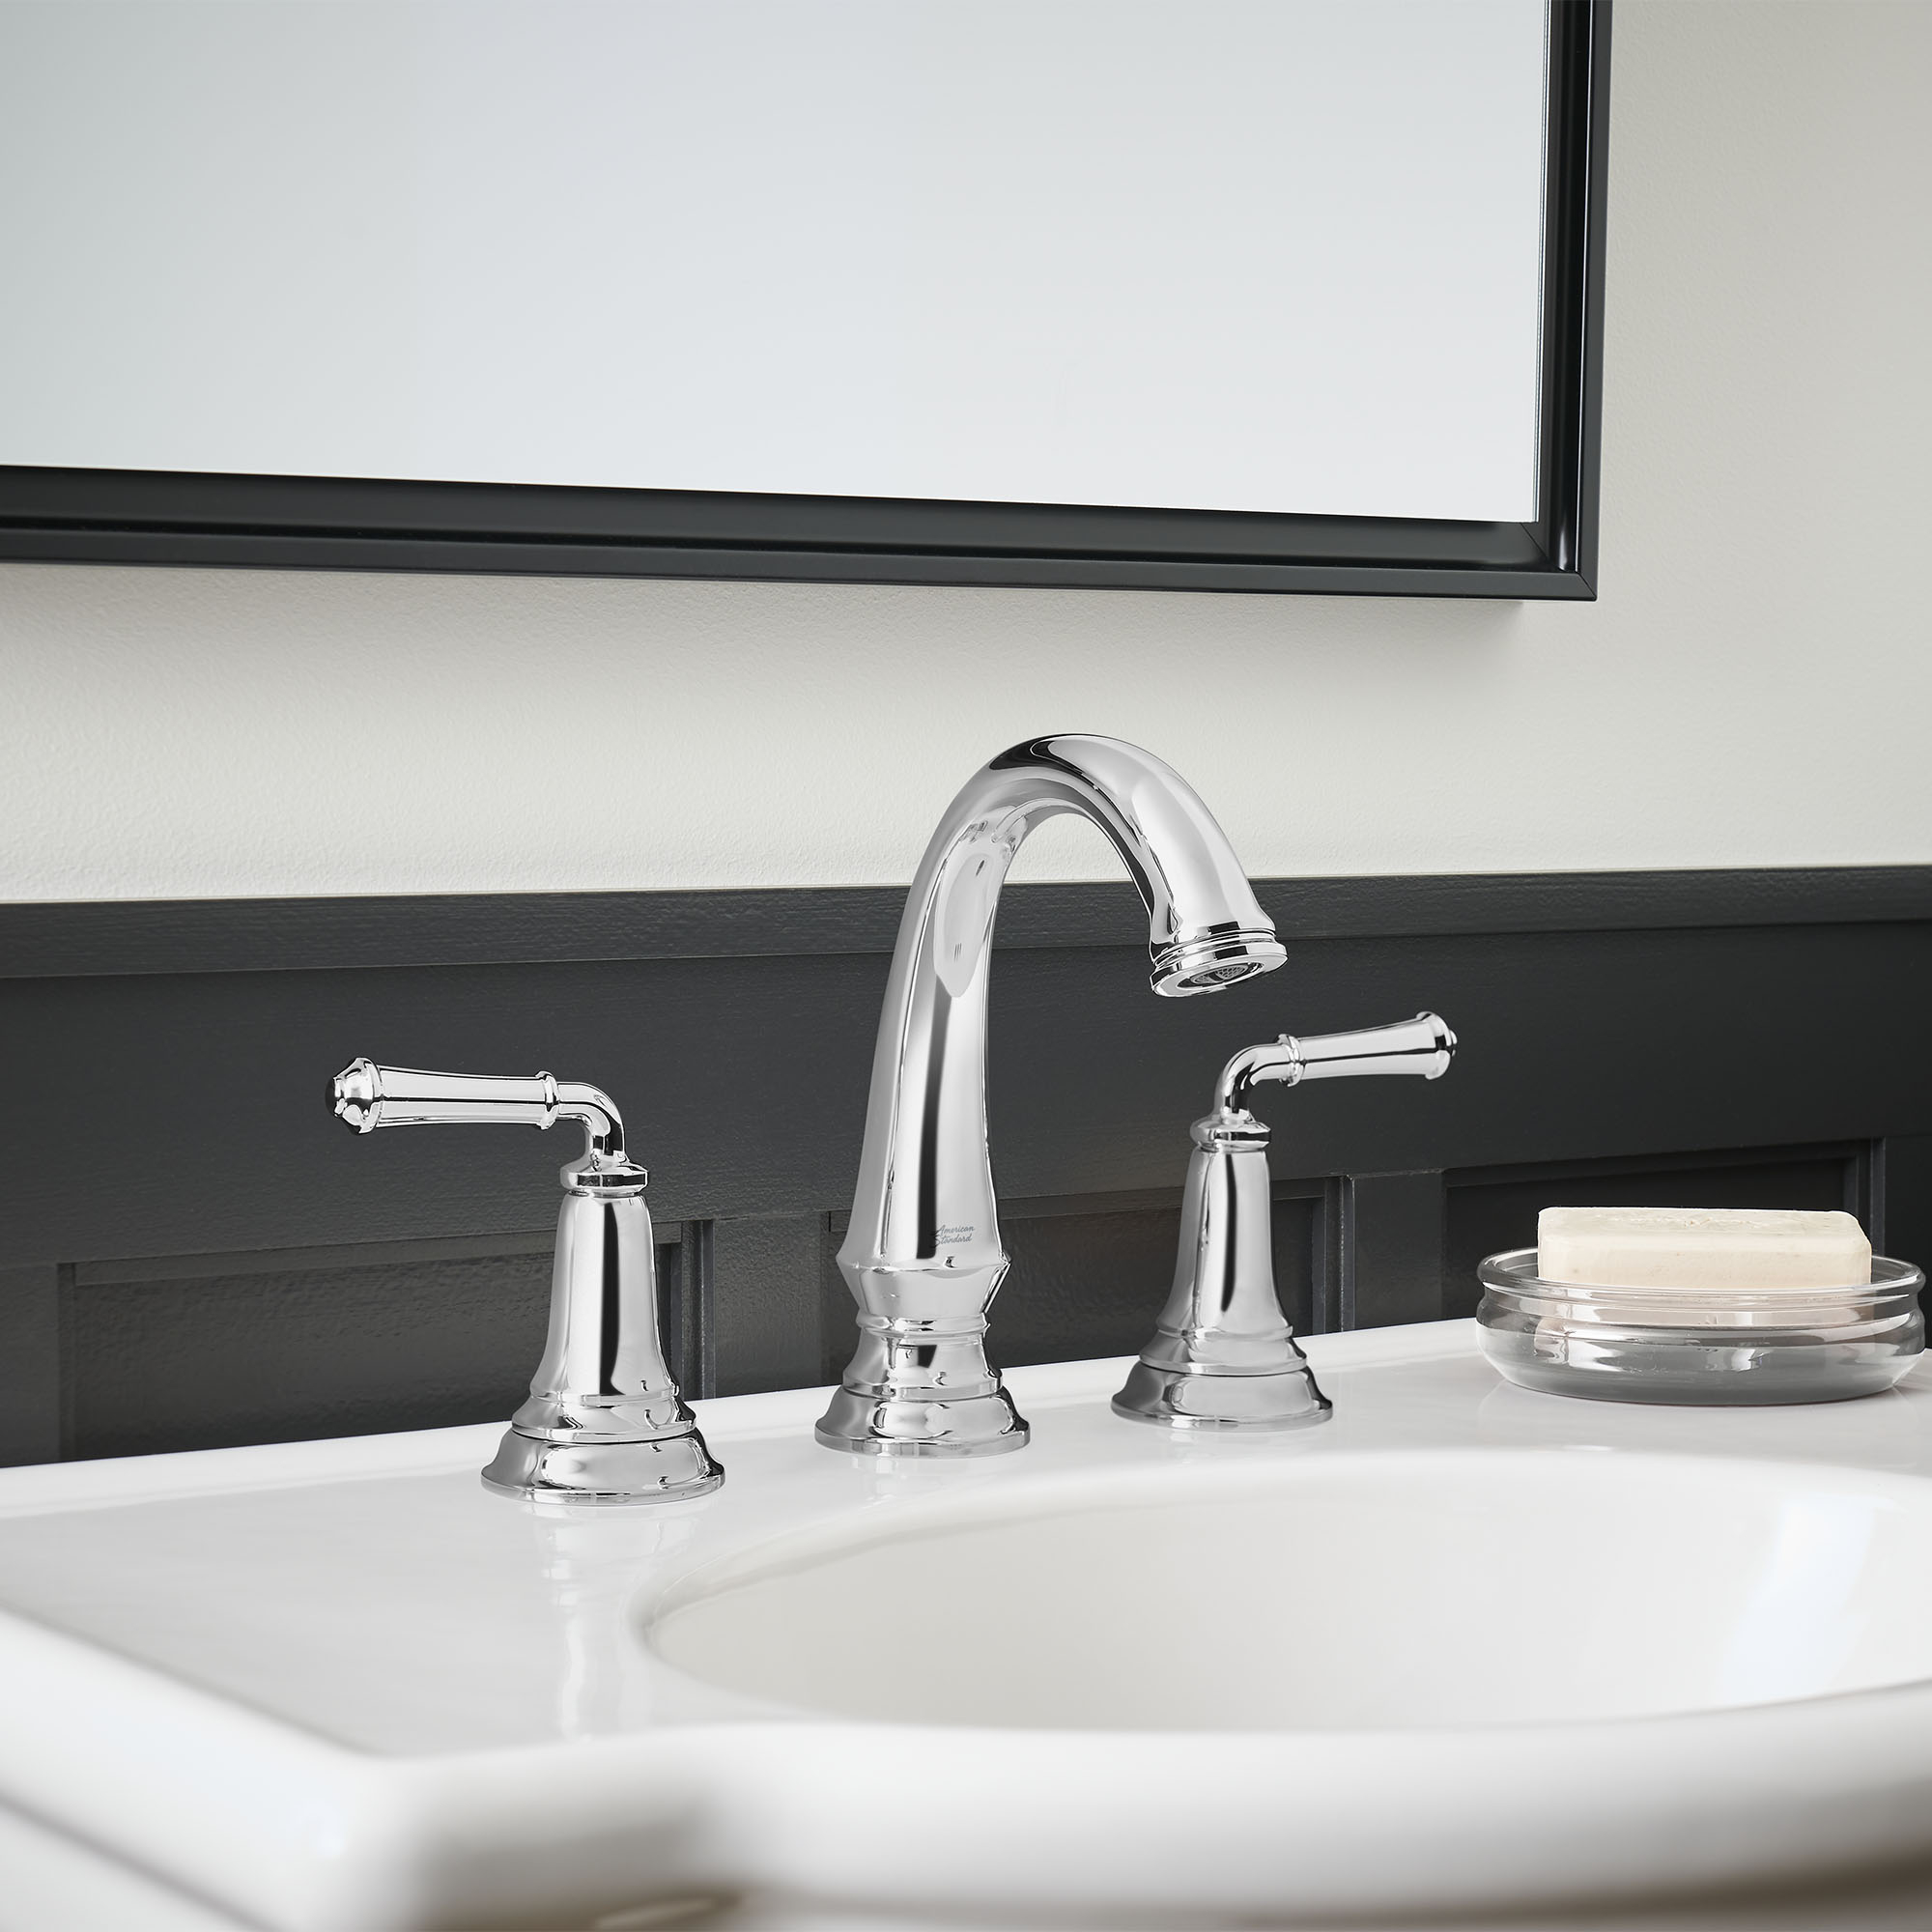 Bathroom Sink Faucets Browse Our Wide Selection Of Faucets For regarding measurements 2000 X 2000